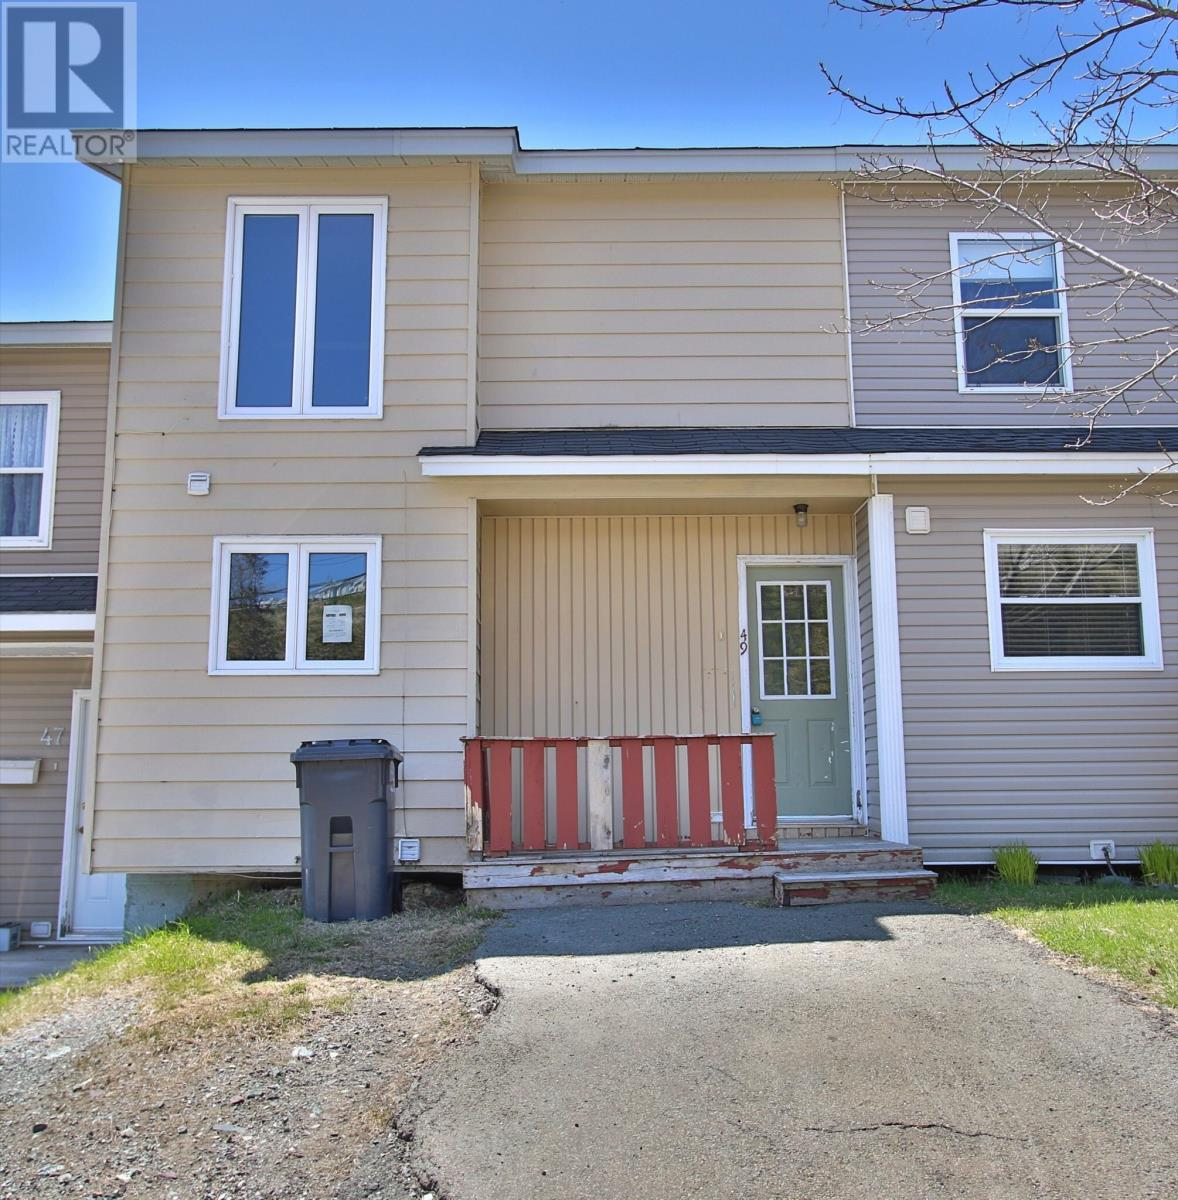 Removed: 49 Farrell Drive, Mount Pearl, NL - Removed on 2019-07-16 21:03:45